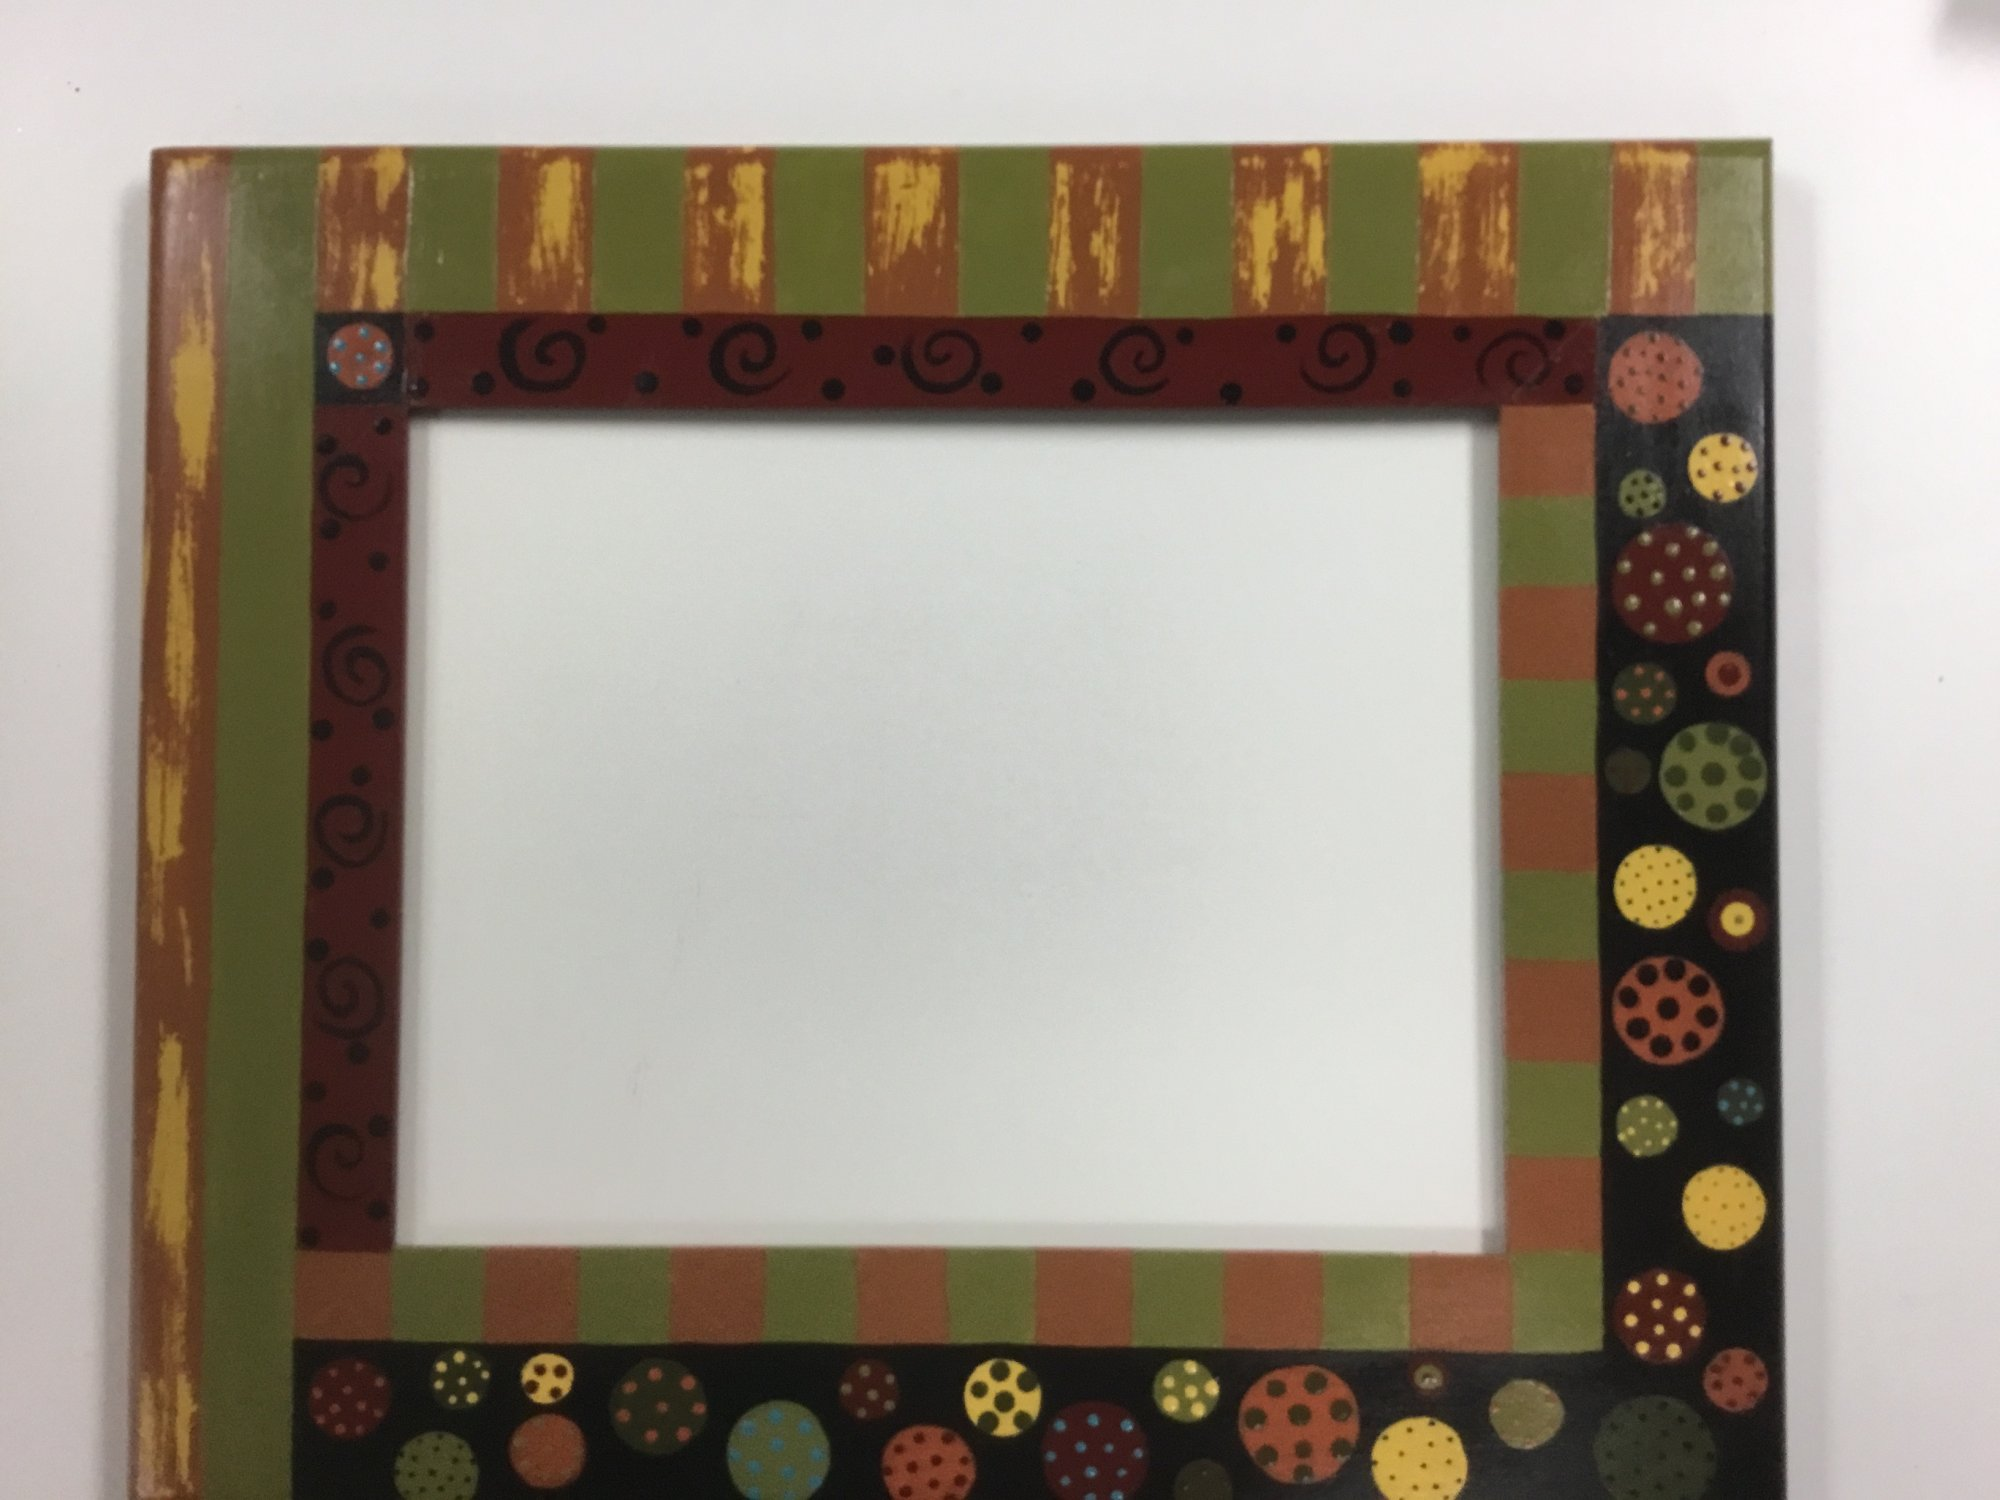 Frame, Hand Painted, 9x12 opening